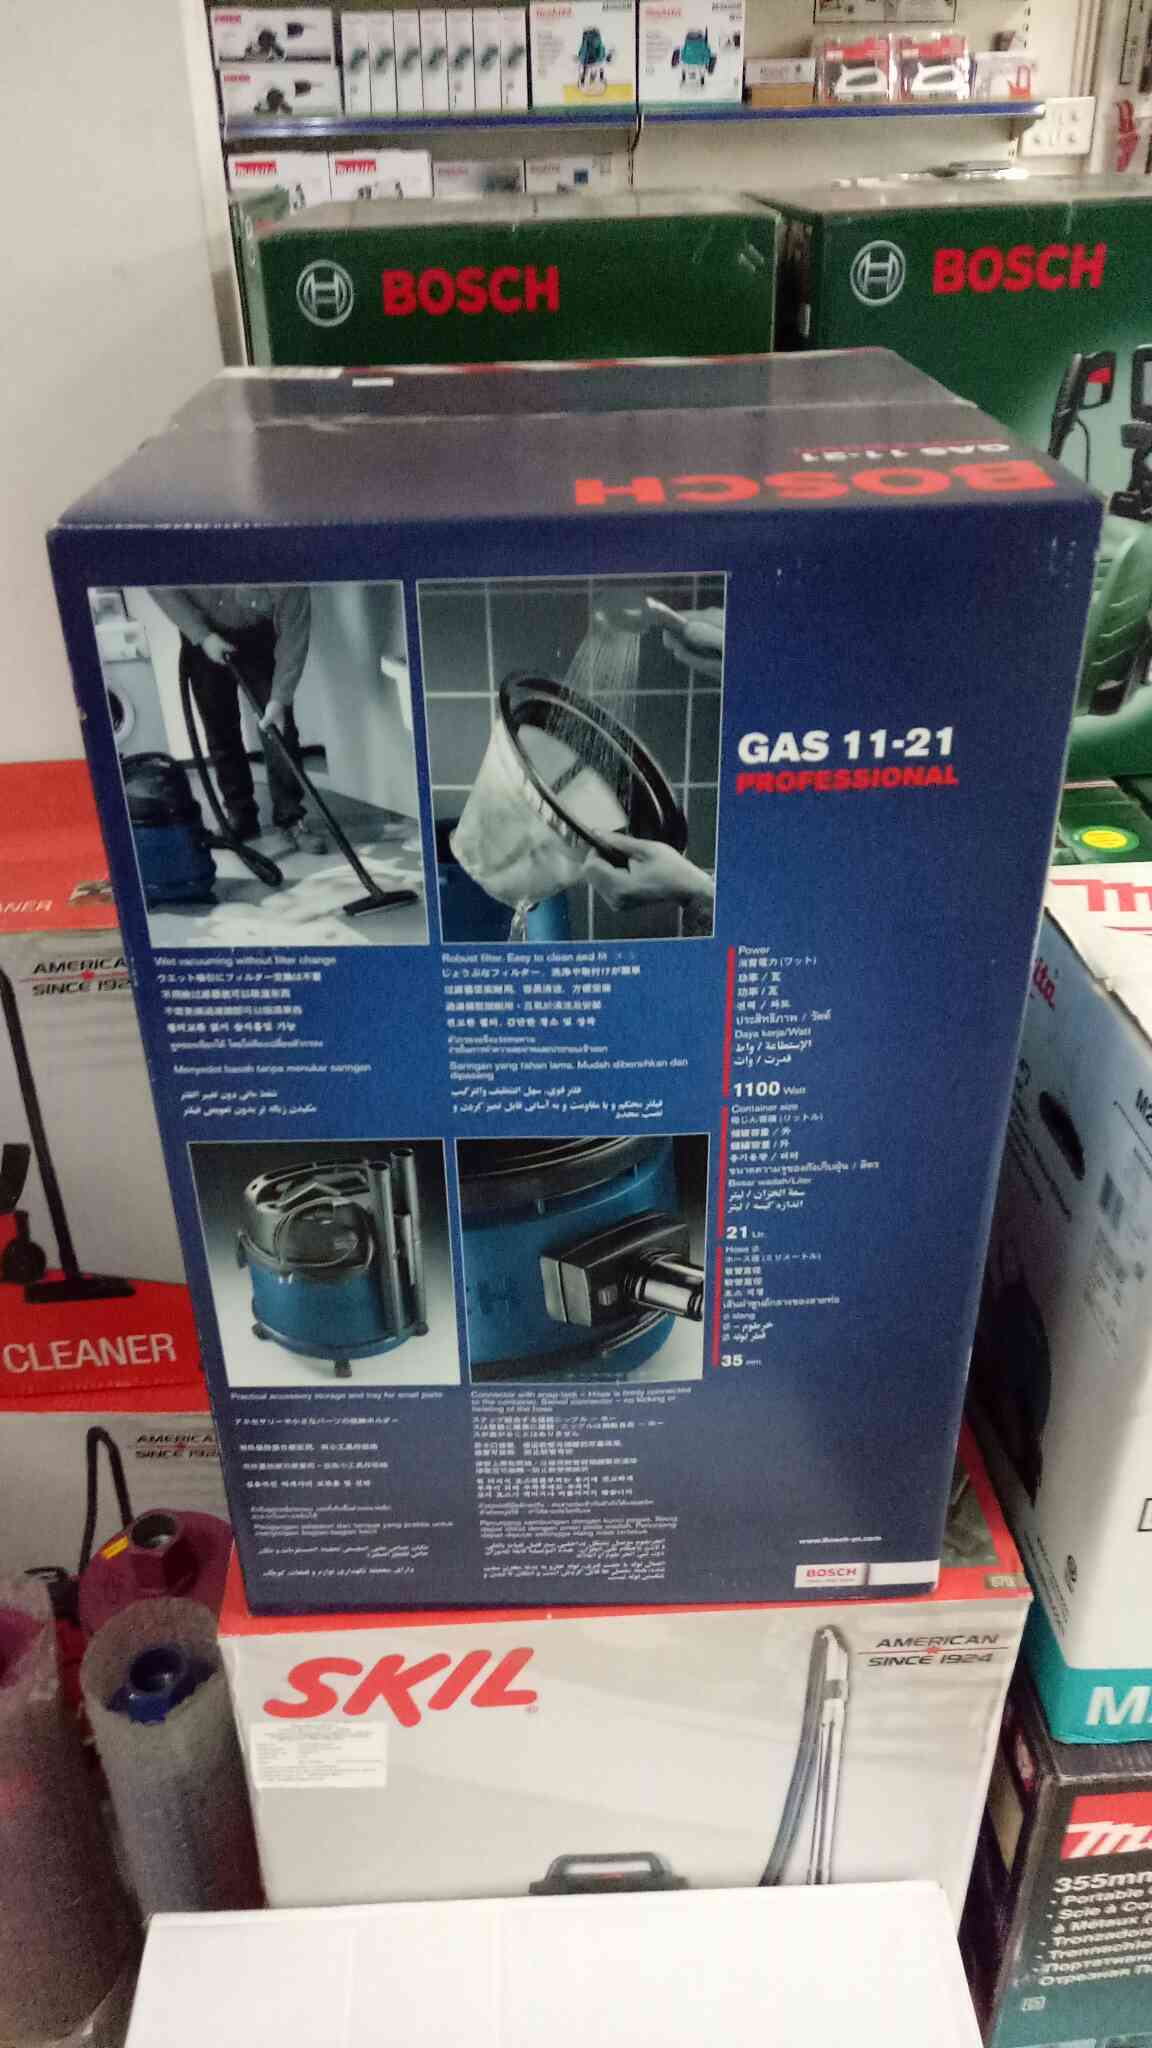 BOSCH vacuum cleaners